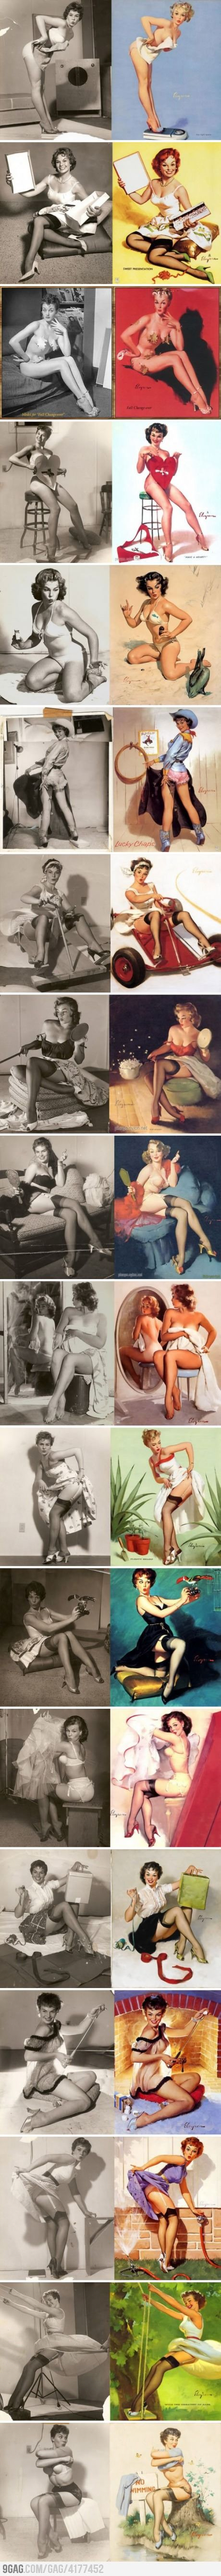 Real Pin up models of the past :): Real Girls, Pin Up Photos, The Real, Girls Generation, The Artists, Pinup Girls, Pin Up Models, Pin Up Girls, Real Pinup